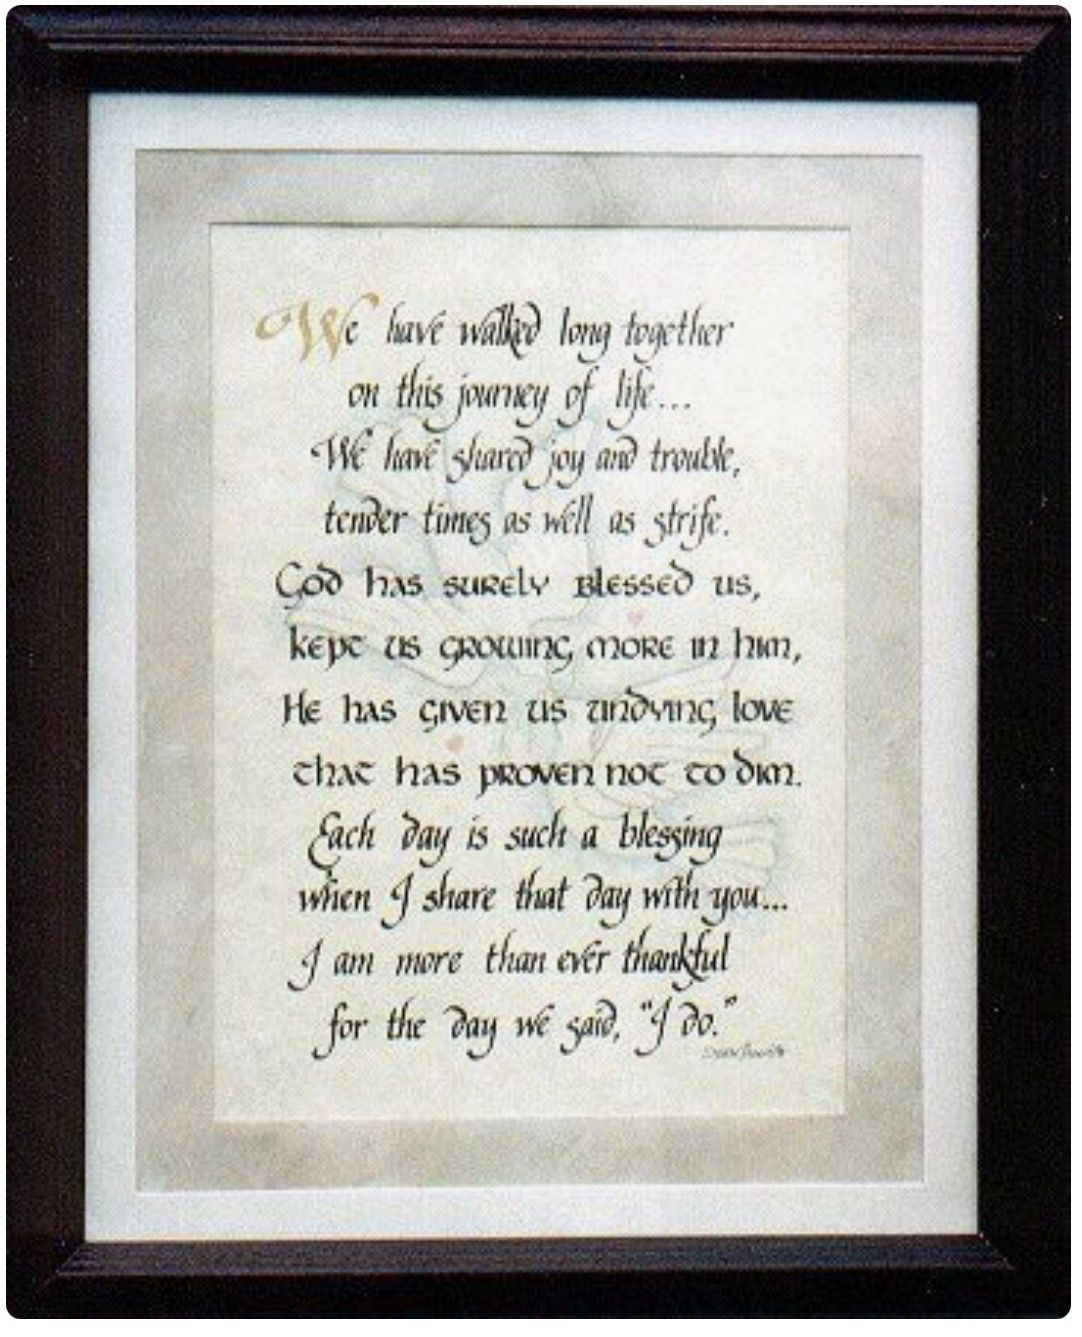 Pin By J L On Arts And Crafts Pinterest Anniversaries And Craft